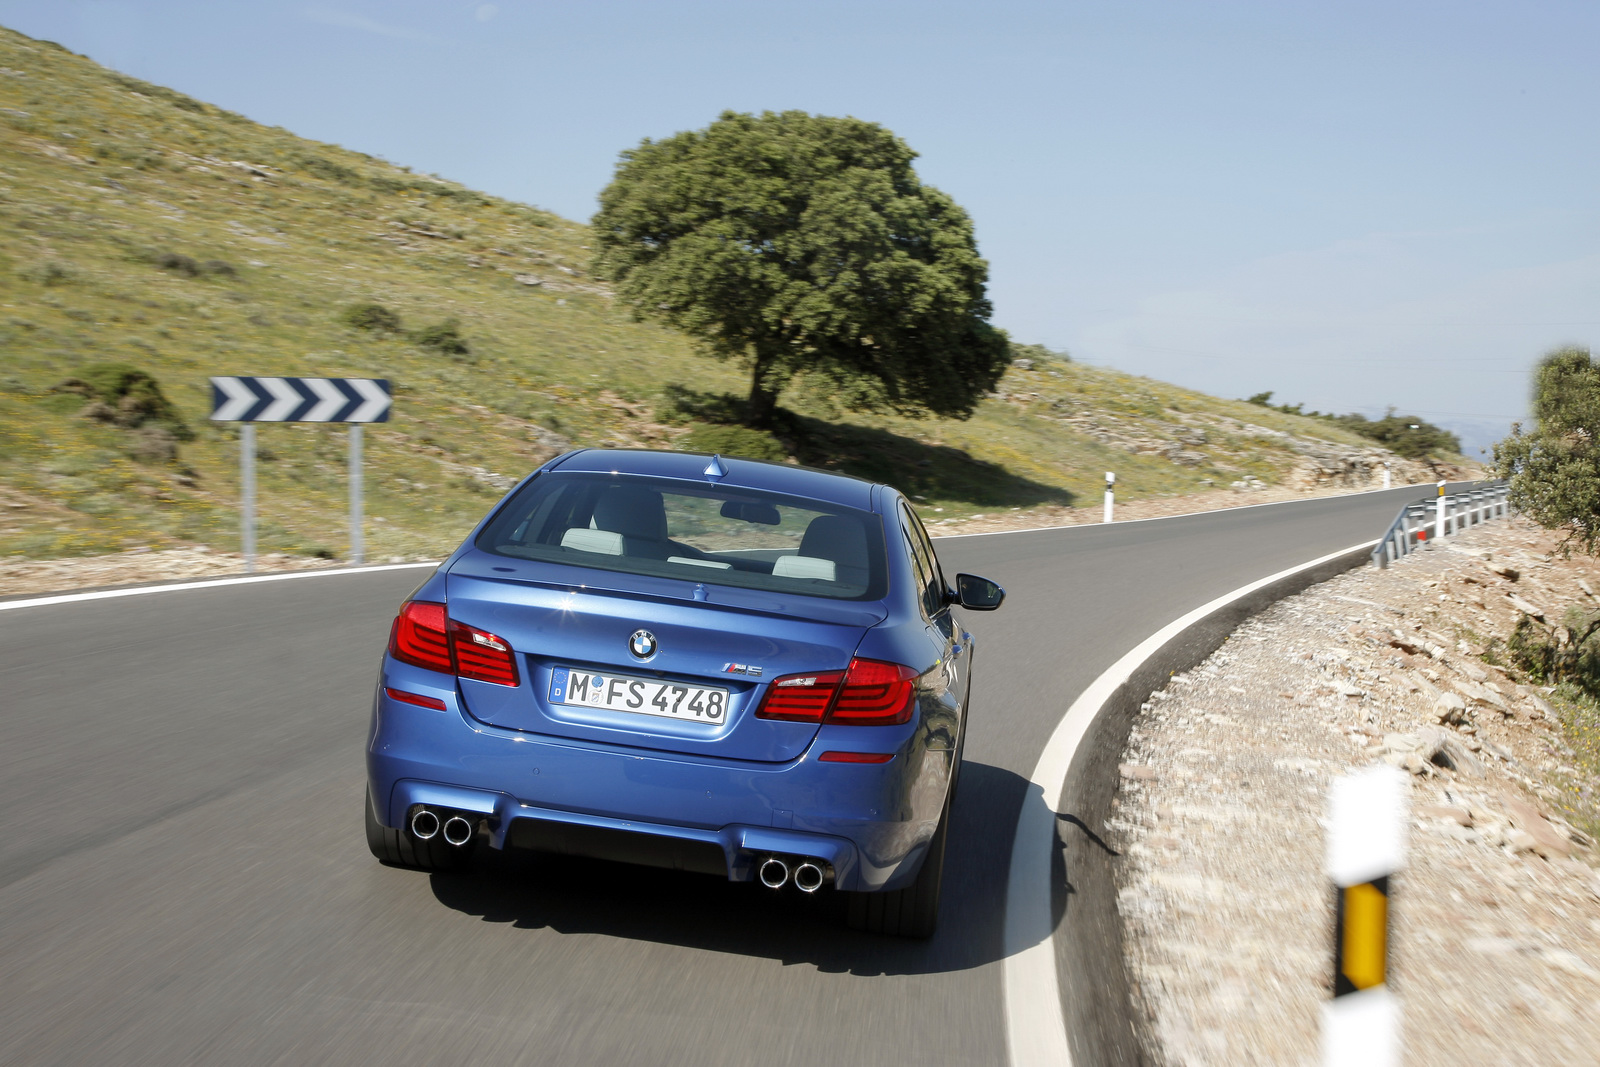 2012 BMW M5 F10 to be revealed at the Goodwood Festival of Speed in the UK